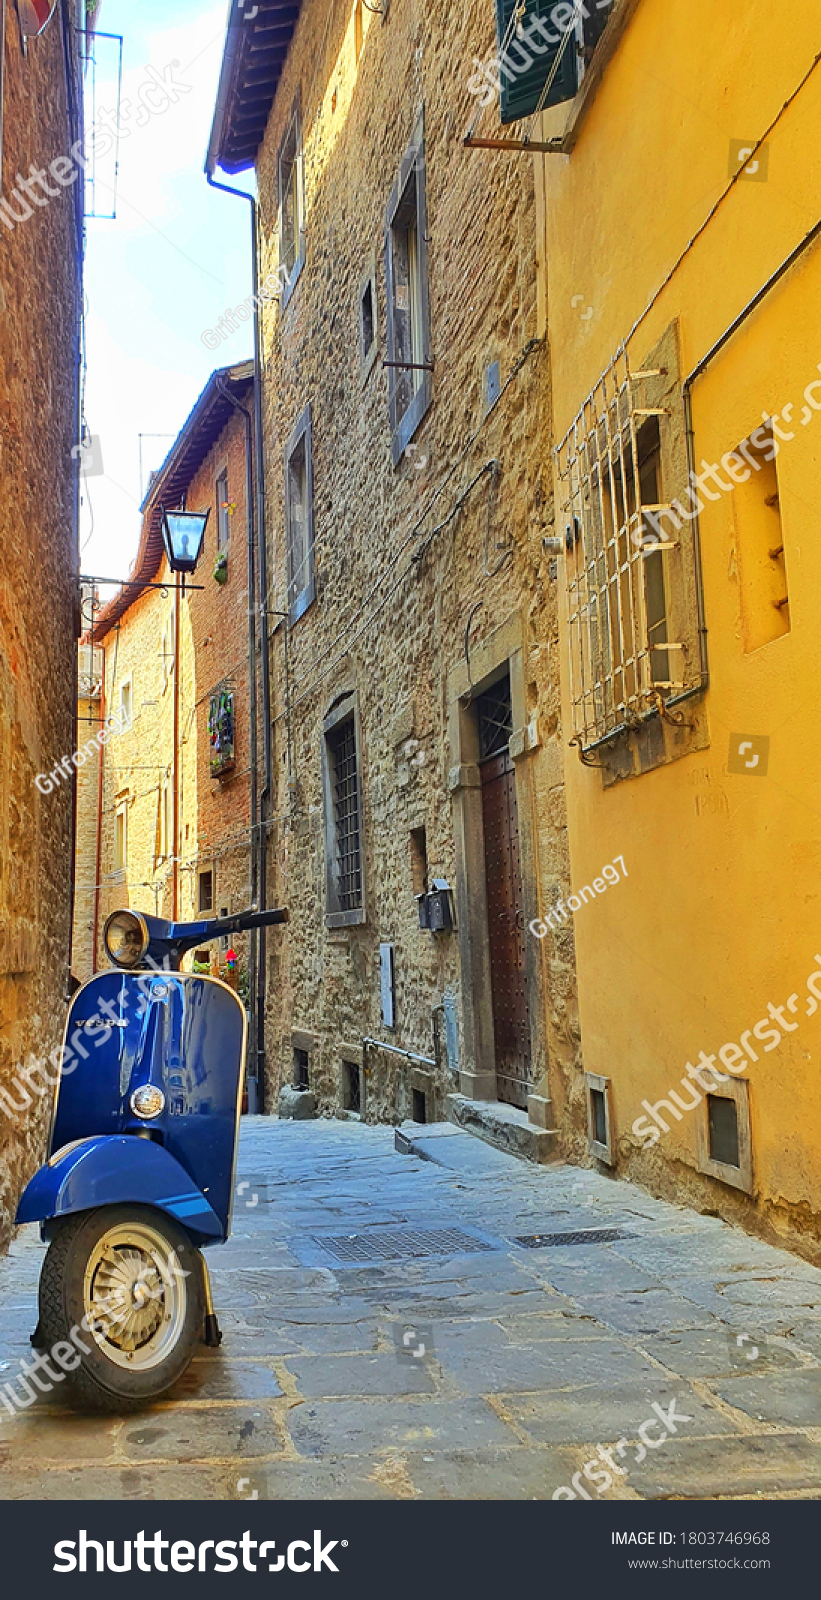 Cortona, Italy - August 18 2020: Vintage scooter Vespa Piaggio parked in a beautiful alley.